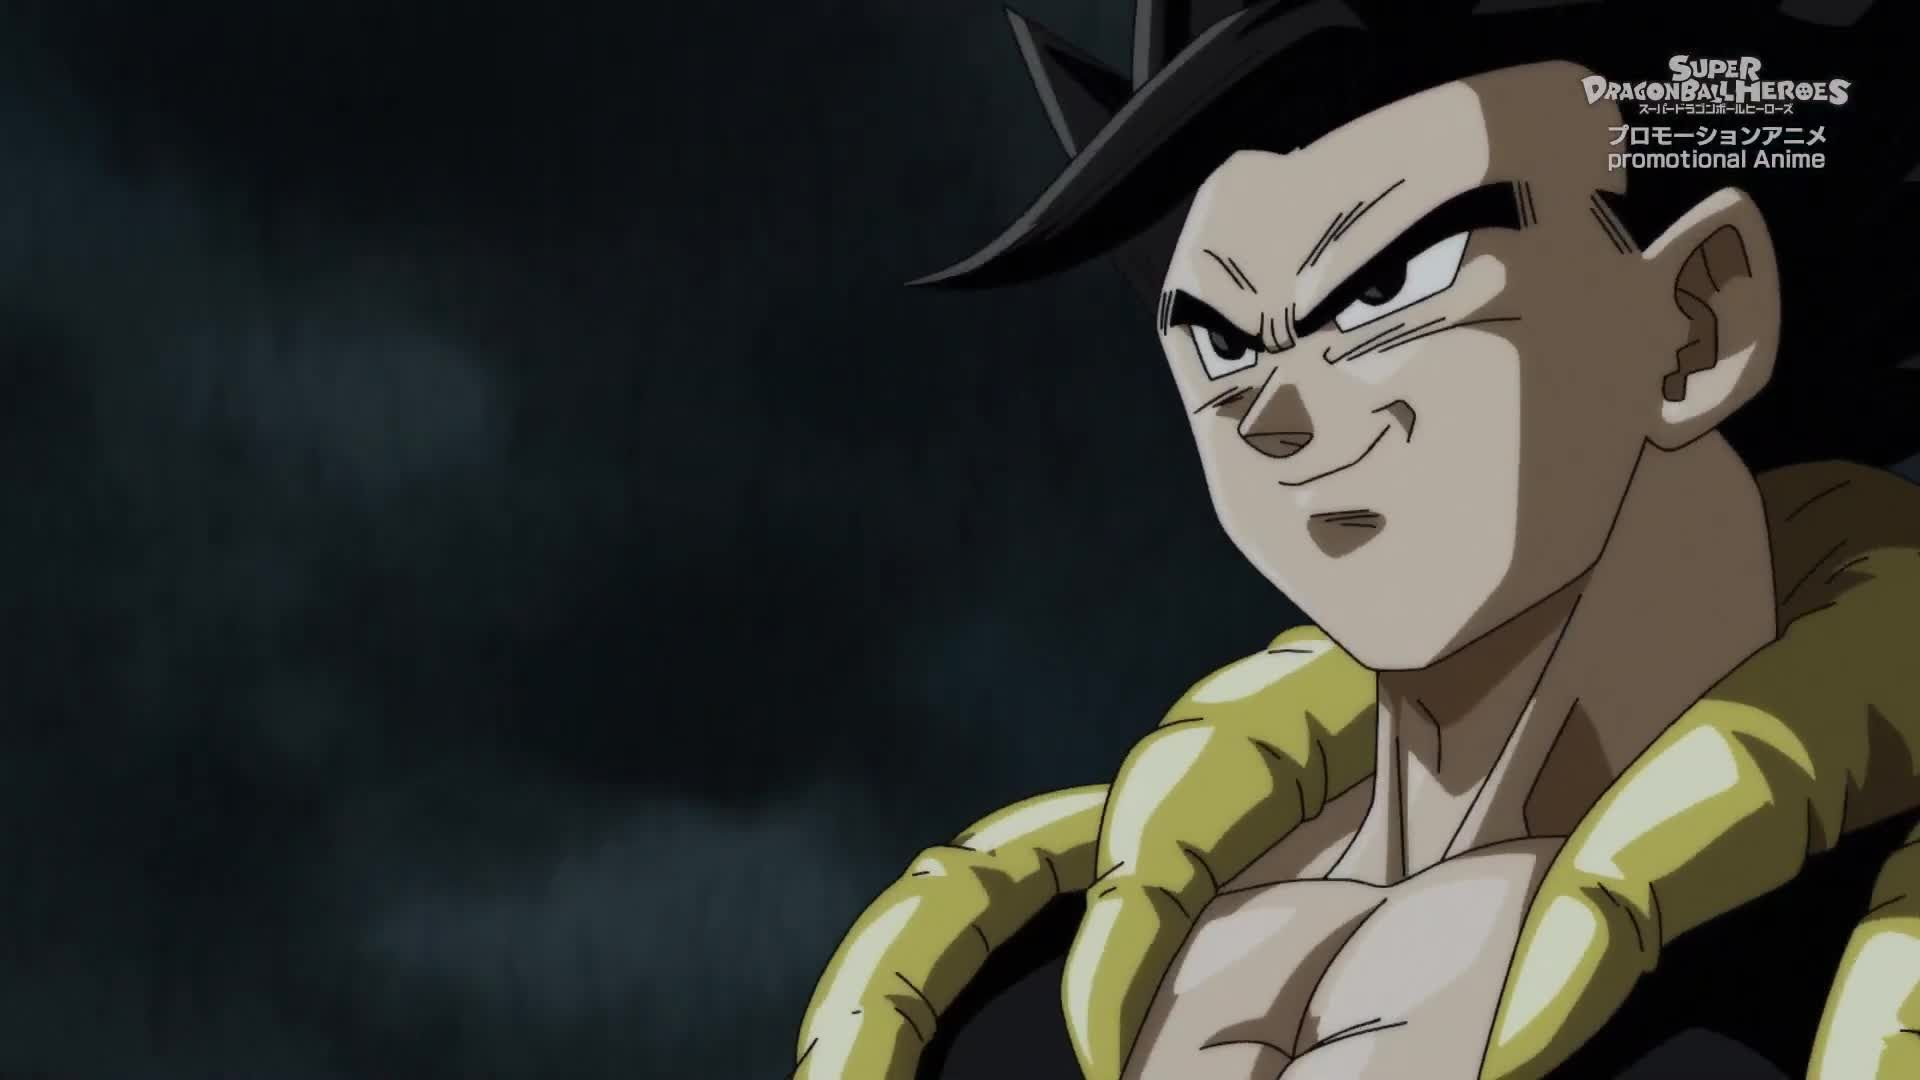 y2mate.com - super_dragon_ball_heroes_episode_17_gogeta_returns_iws-xMZVPRw_1080p_1478.jpg